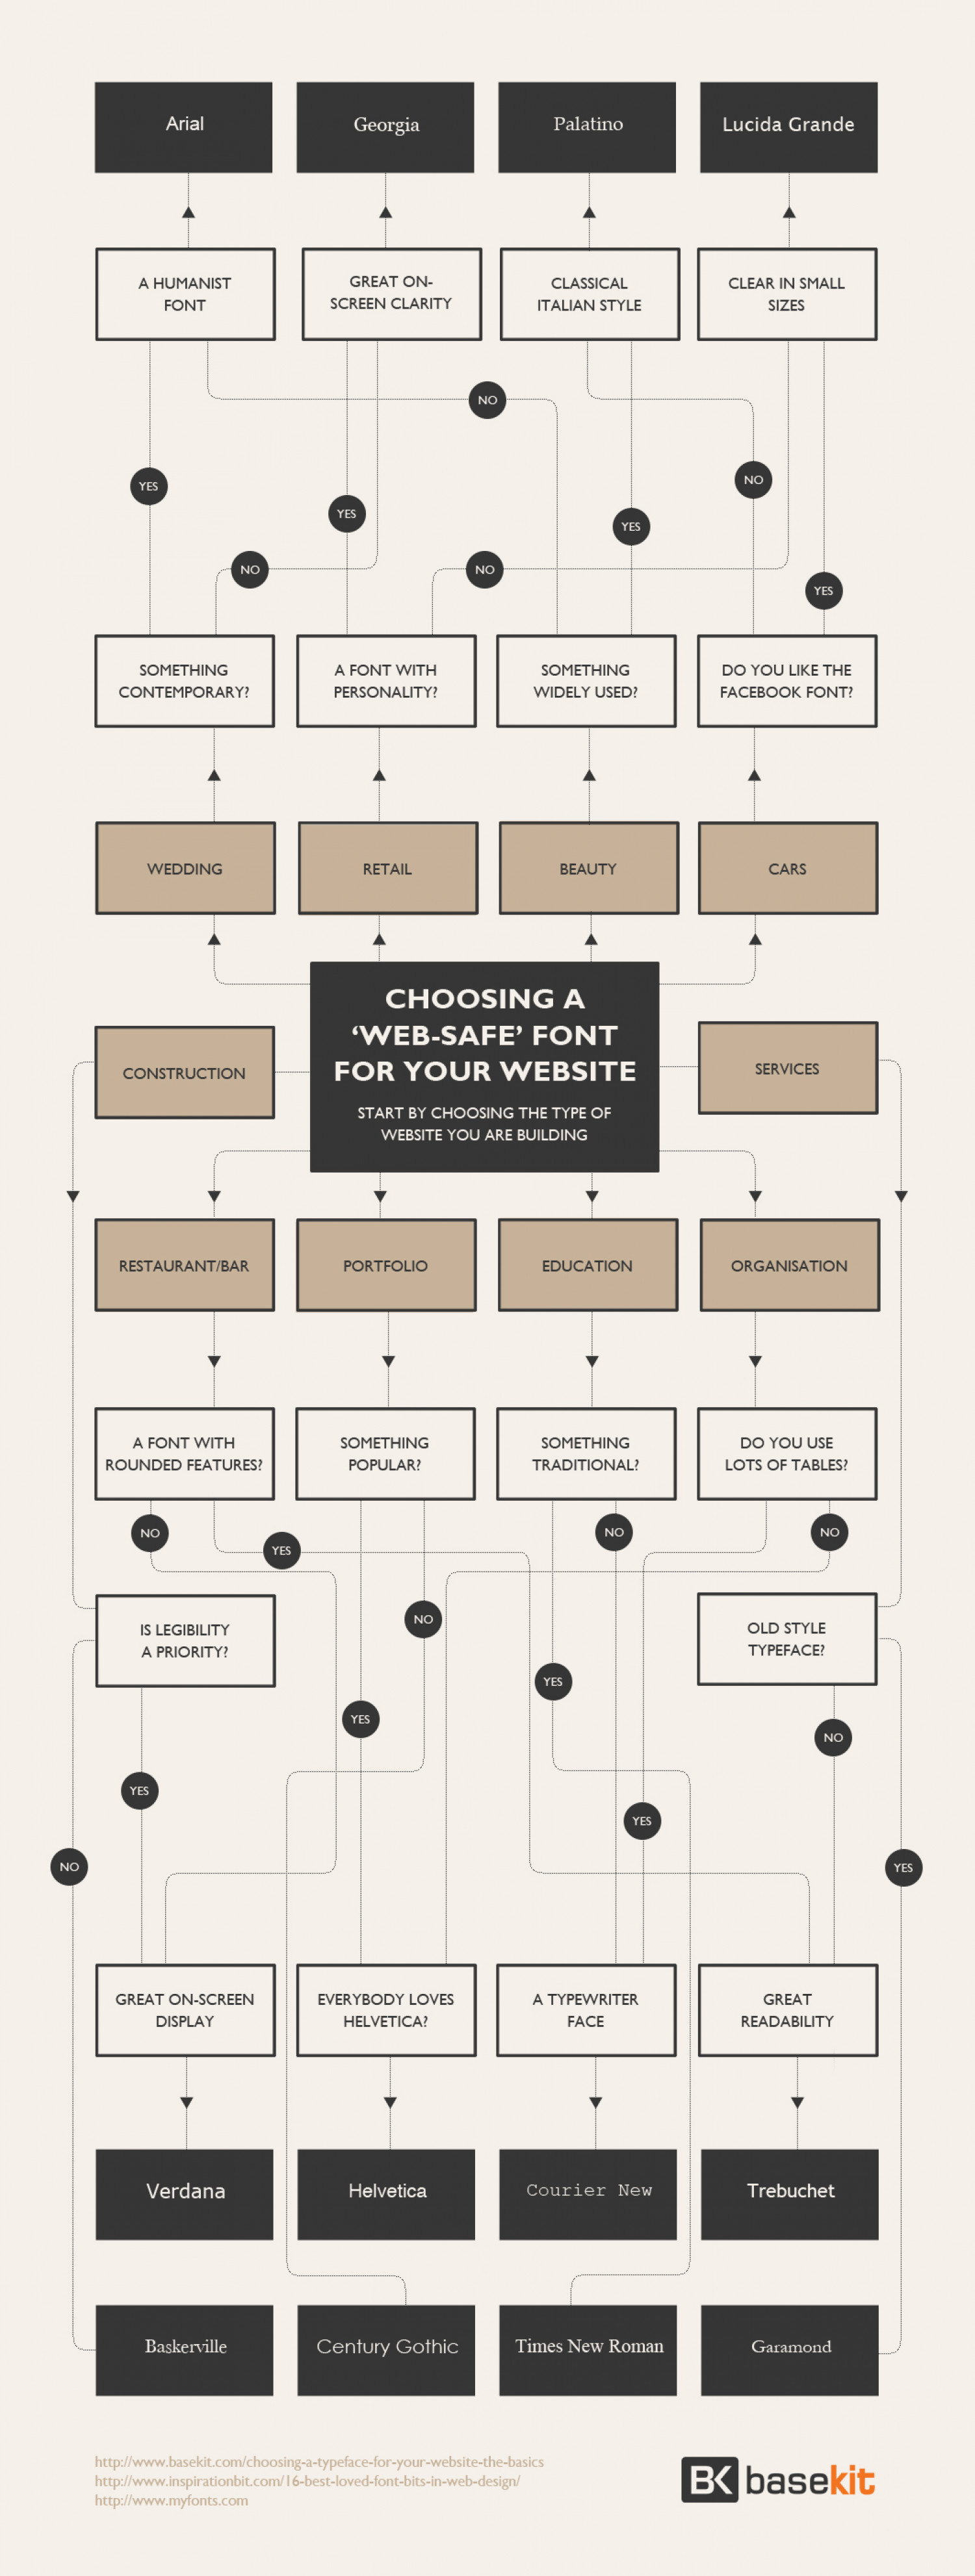 Choosing A Web-Safe Font For Your Website Infographic